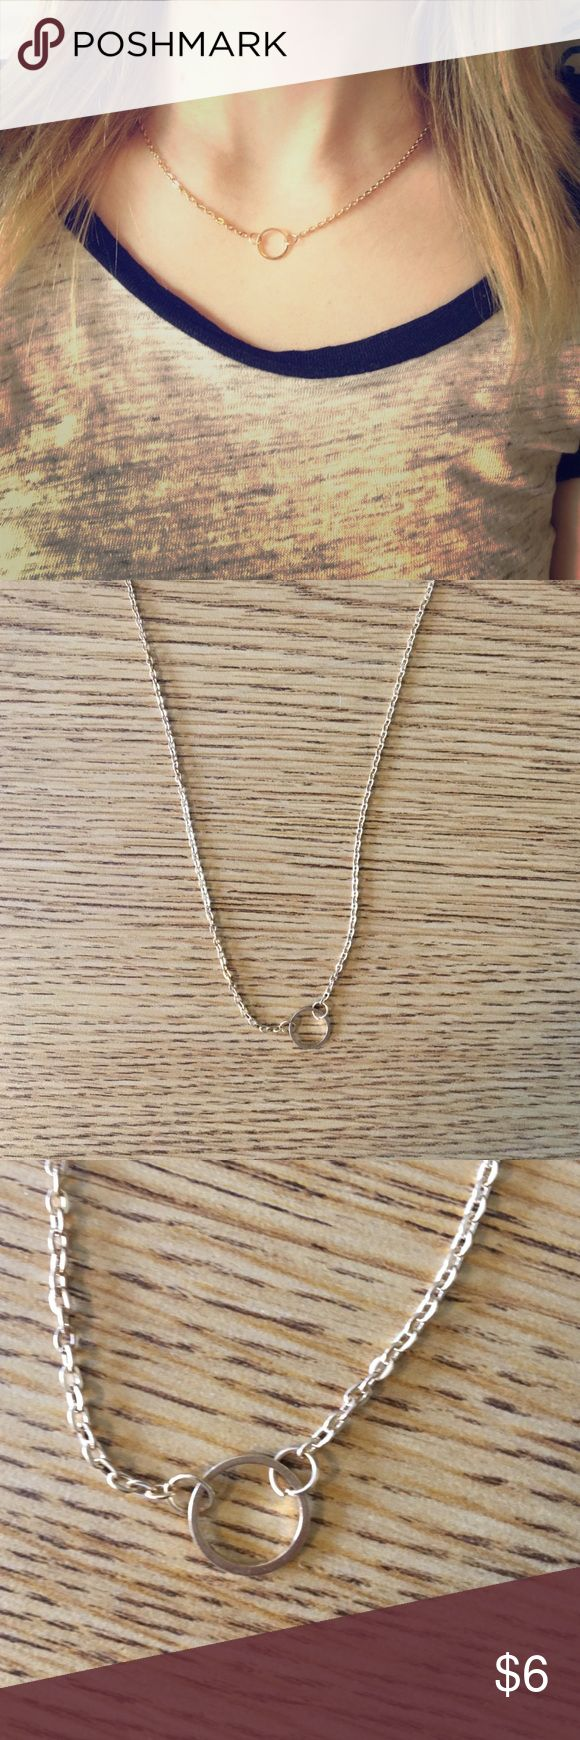 gold circle necklace Super cute! Only worn to take cover photo, simple everyday necklace. PLEASE NOTE THIS CAN ONLY BE BUNDLED WITH OTHER ITEMS WITH A RED DOT :) Jewelry Necklaces